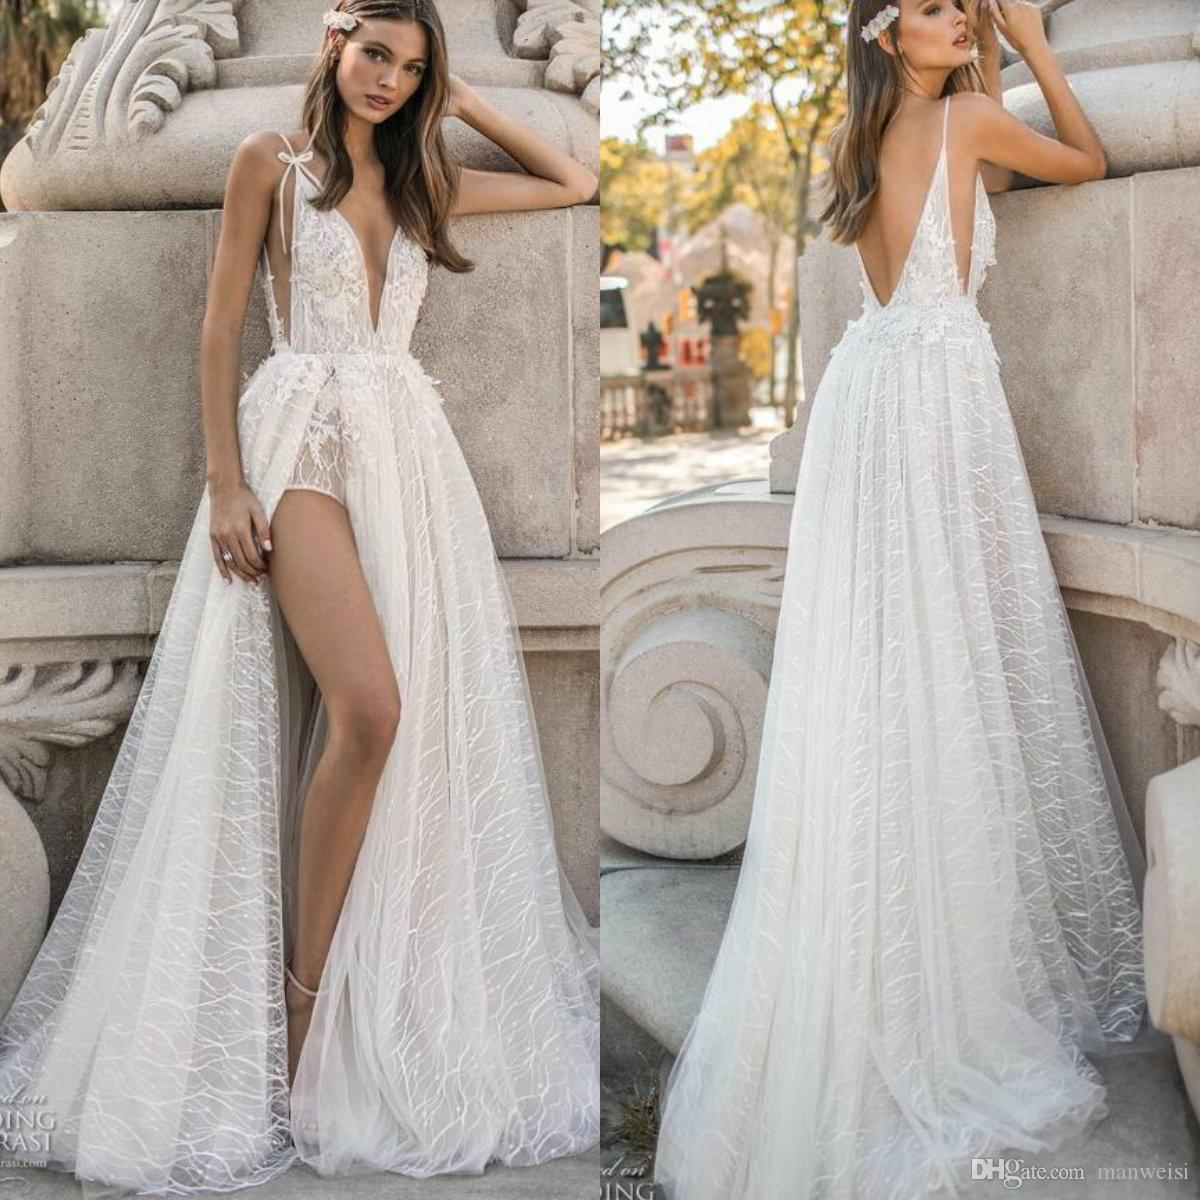 Discount 2019 Berta A Line Beach Wedding Dresses Sexy High Side Split Lace  Applique Backless Boho Wedding Dress Spaghetti V Neck Bridal Gowns Vintage  ... a622c1733ee0